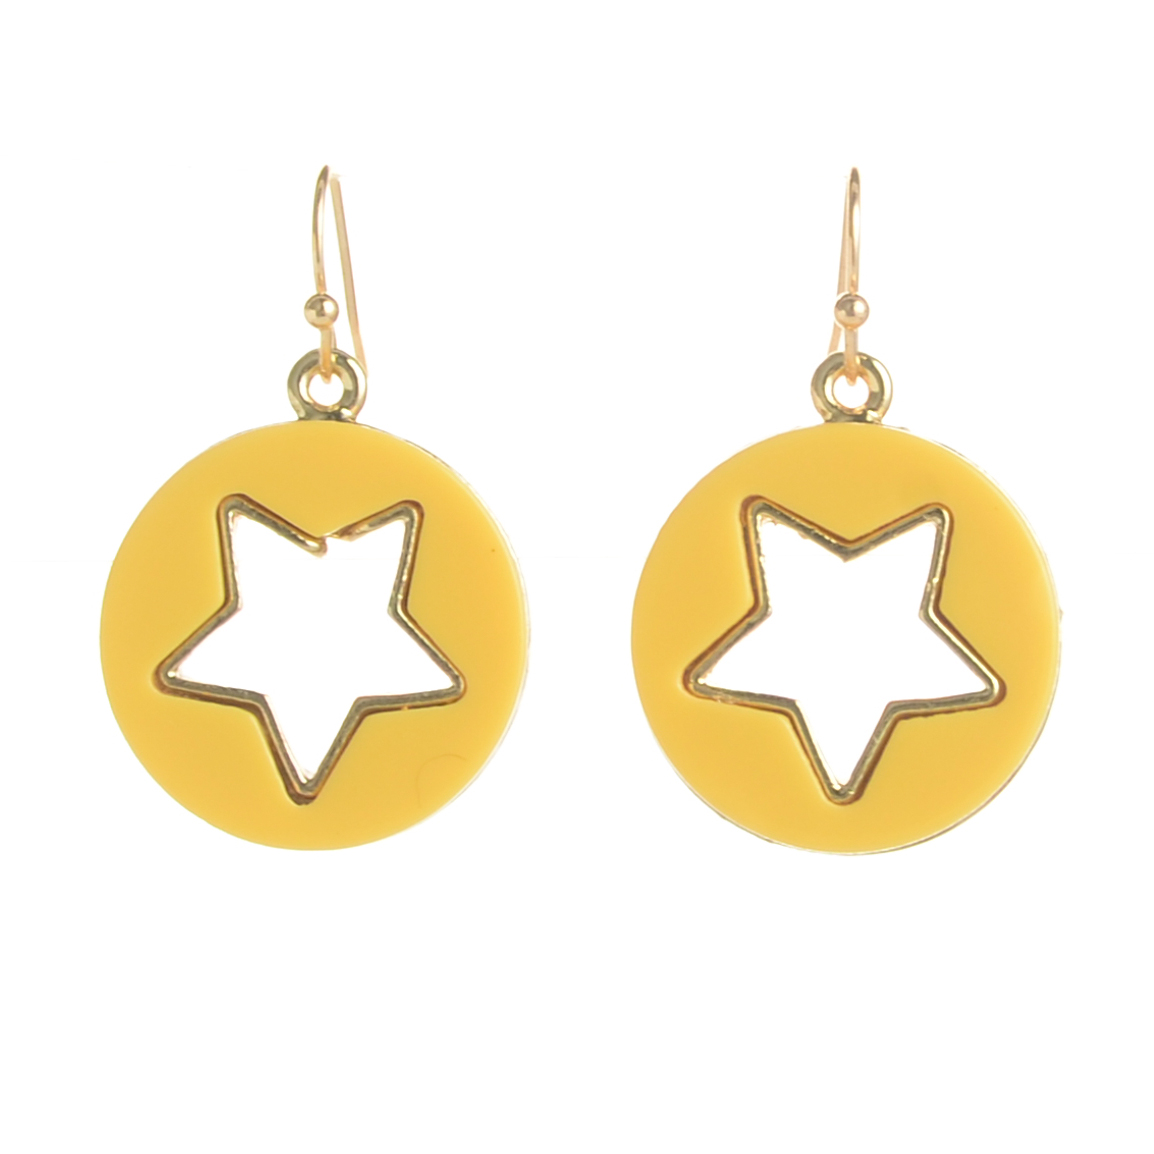 WENZHE Fashion Yellow Round Hollow Star Shape Acrylic Drop Earrings For Women Featured Image